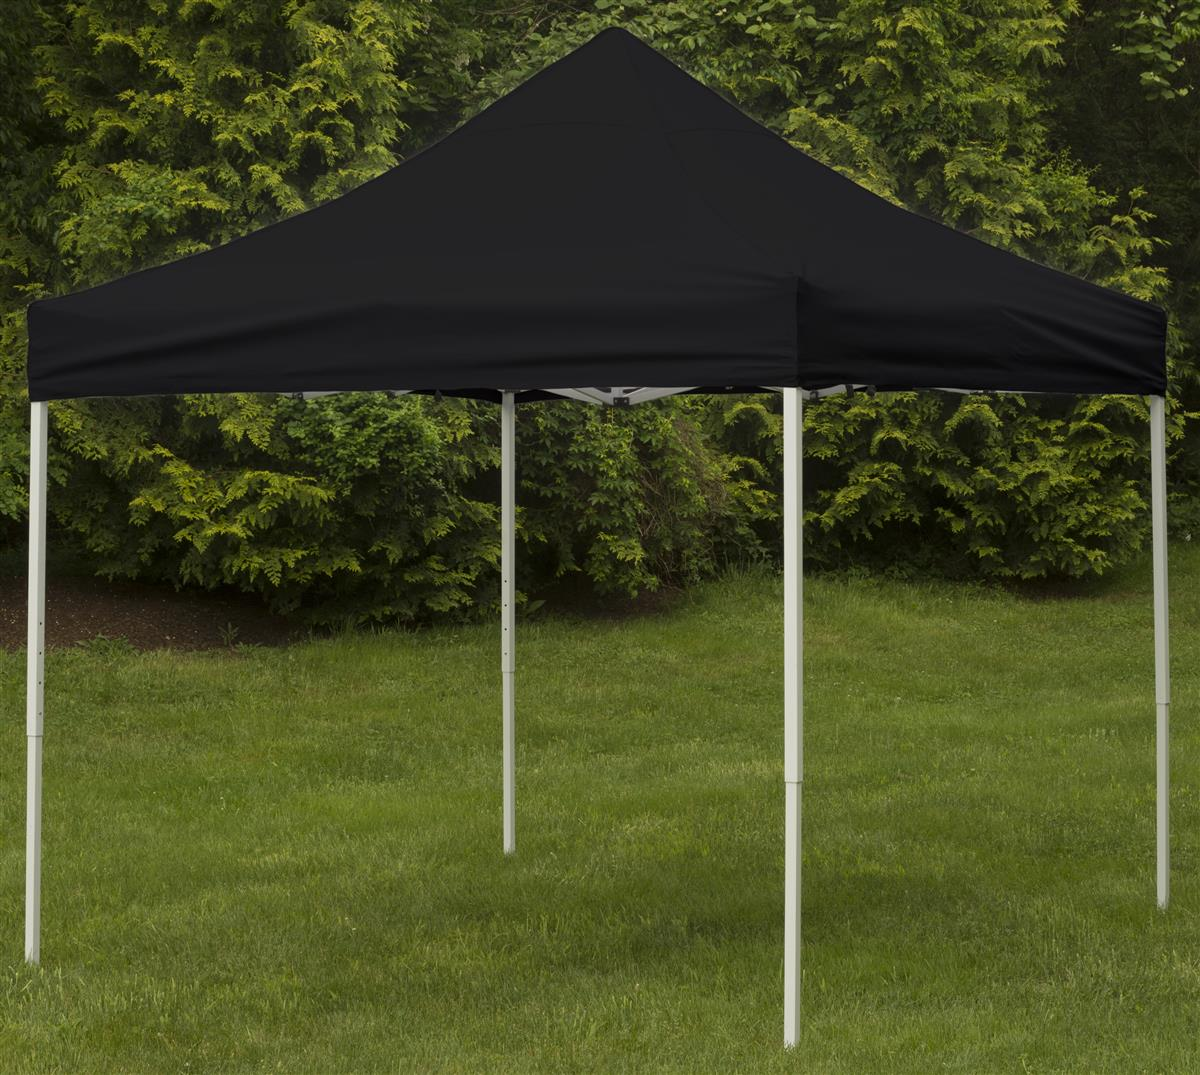 Portable Exhibition Tents : Tent canopy  square configuration